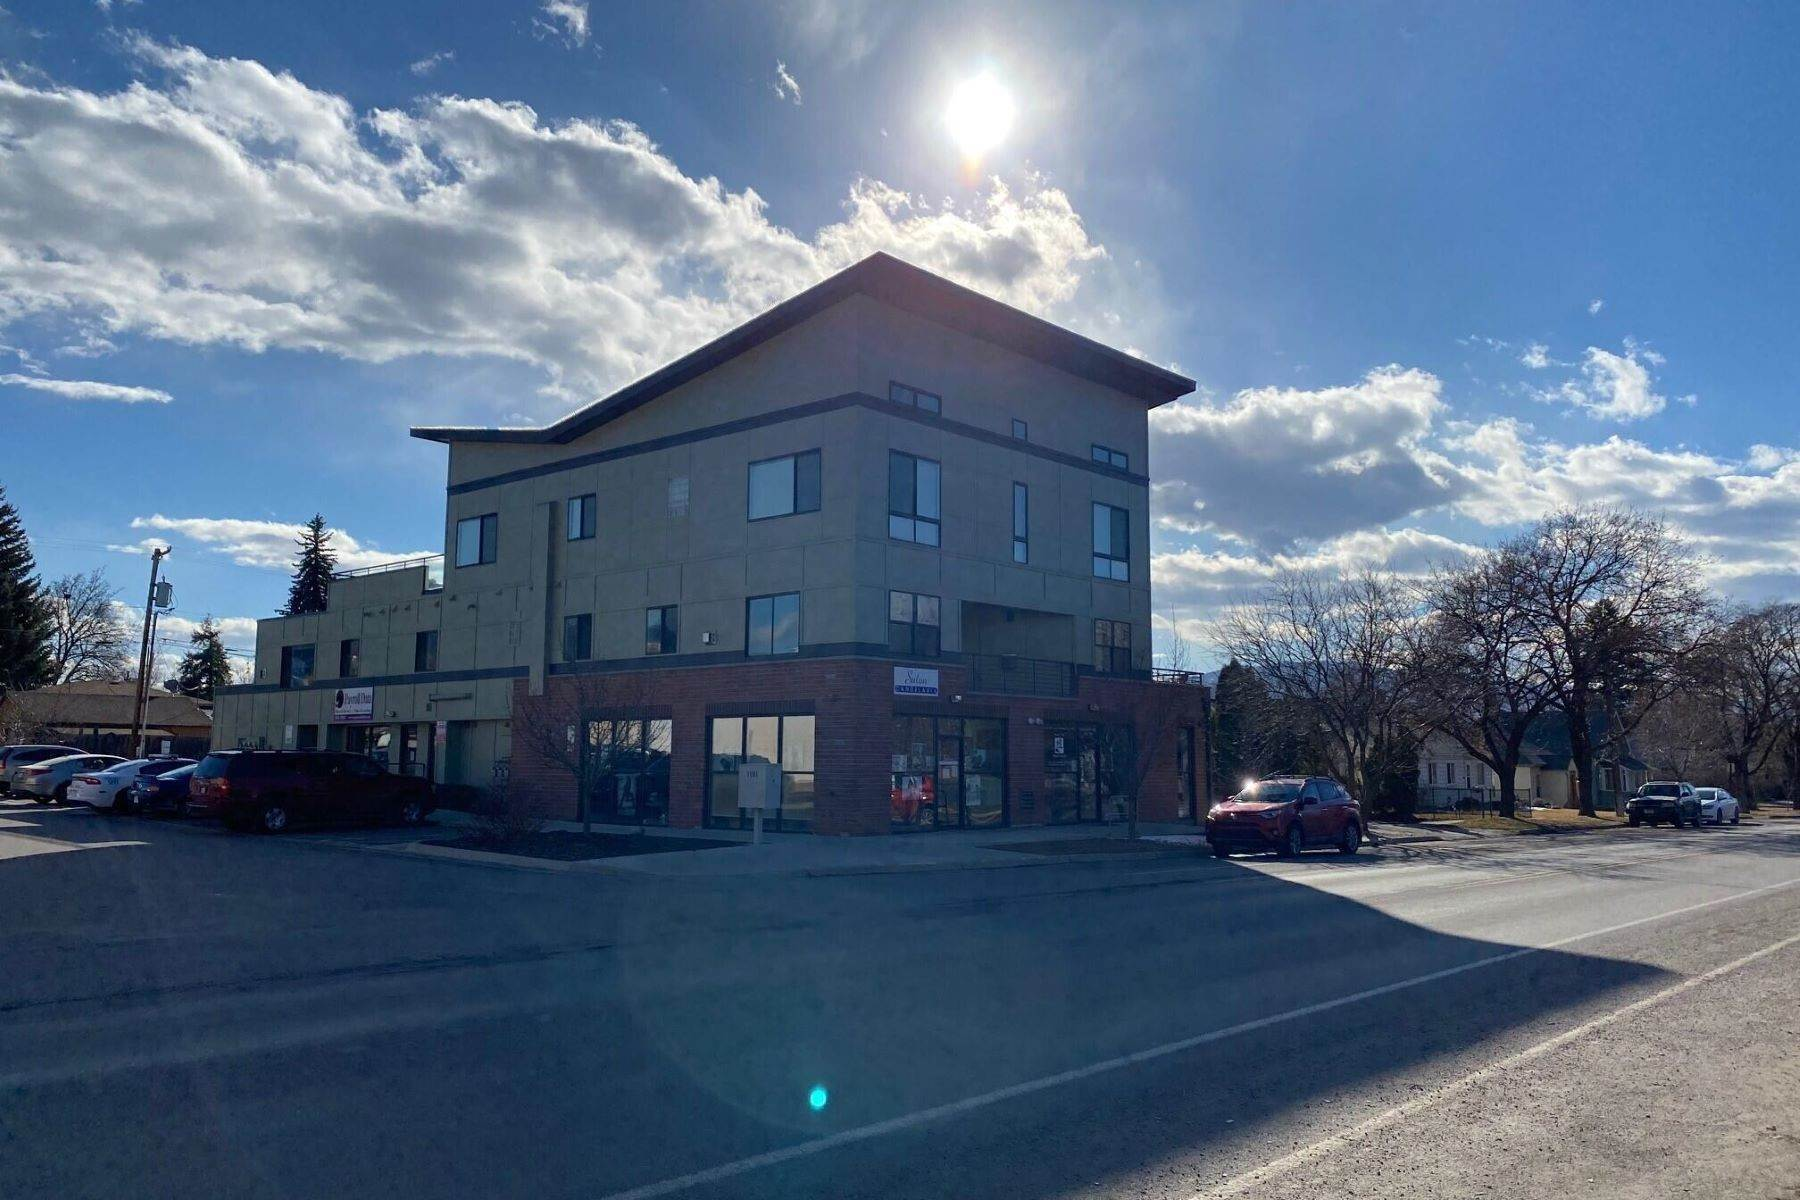 Condominiums for Sale at Condo - Great Location 1101 South 3rd Street West Missoula, Montana 59801 United States